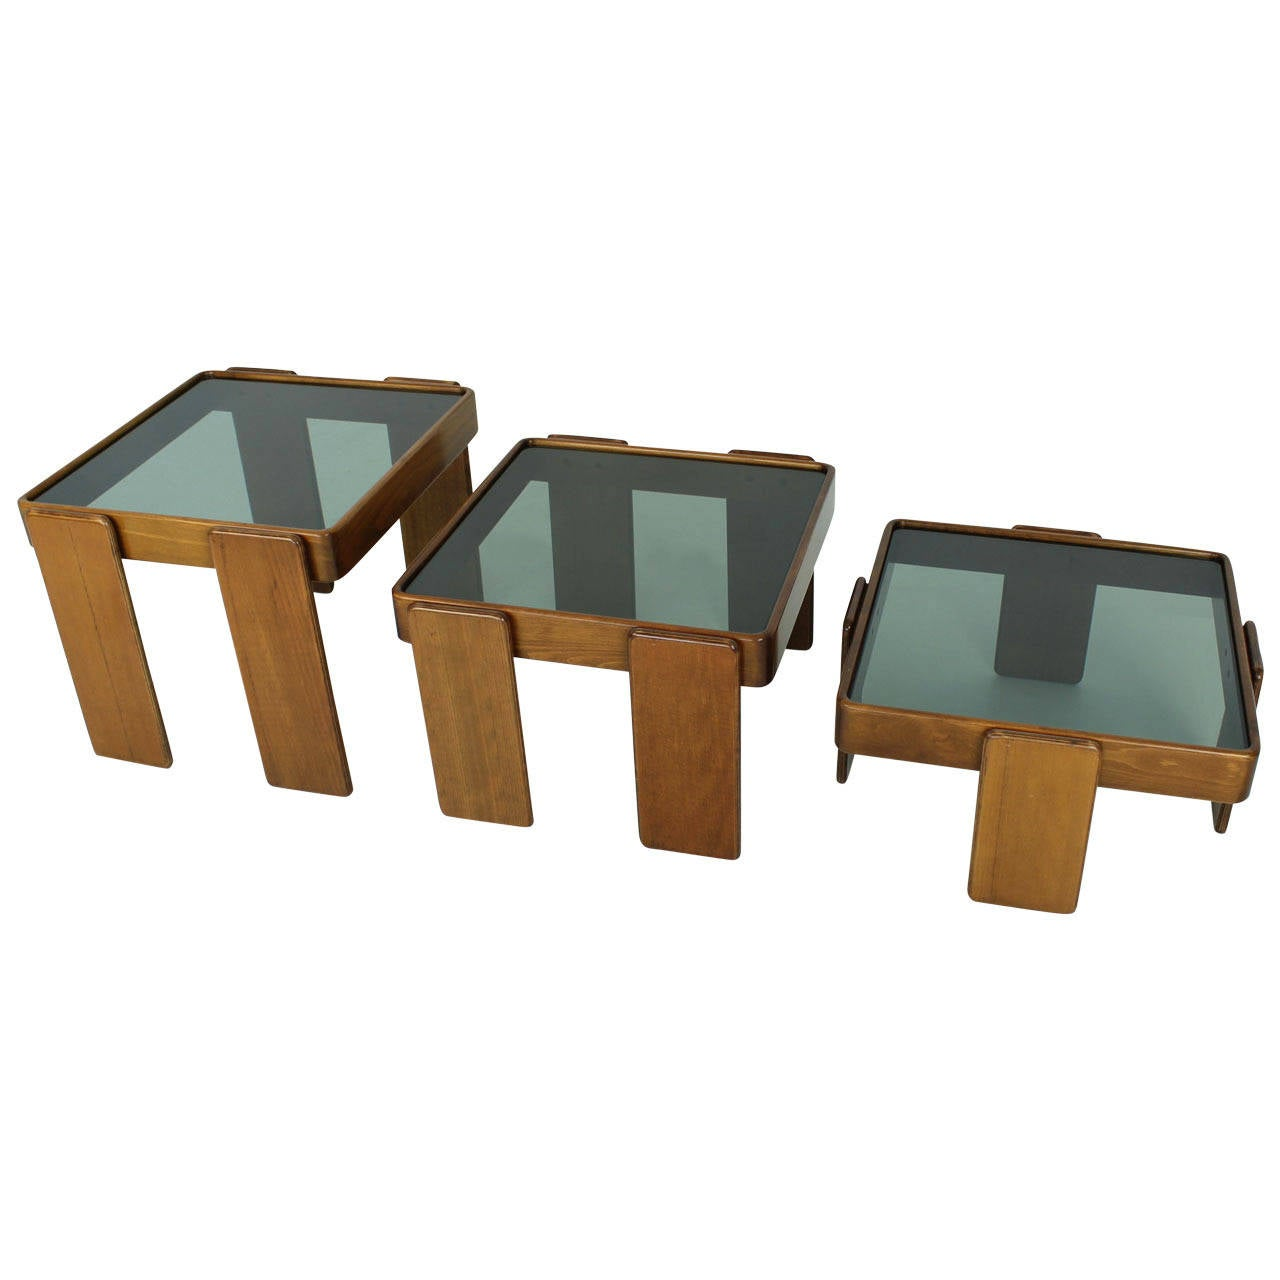 Stacking Coffee Tables By Gianfranco Frattini For Cassina At 1stdibs